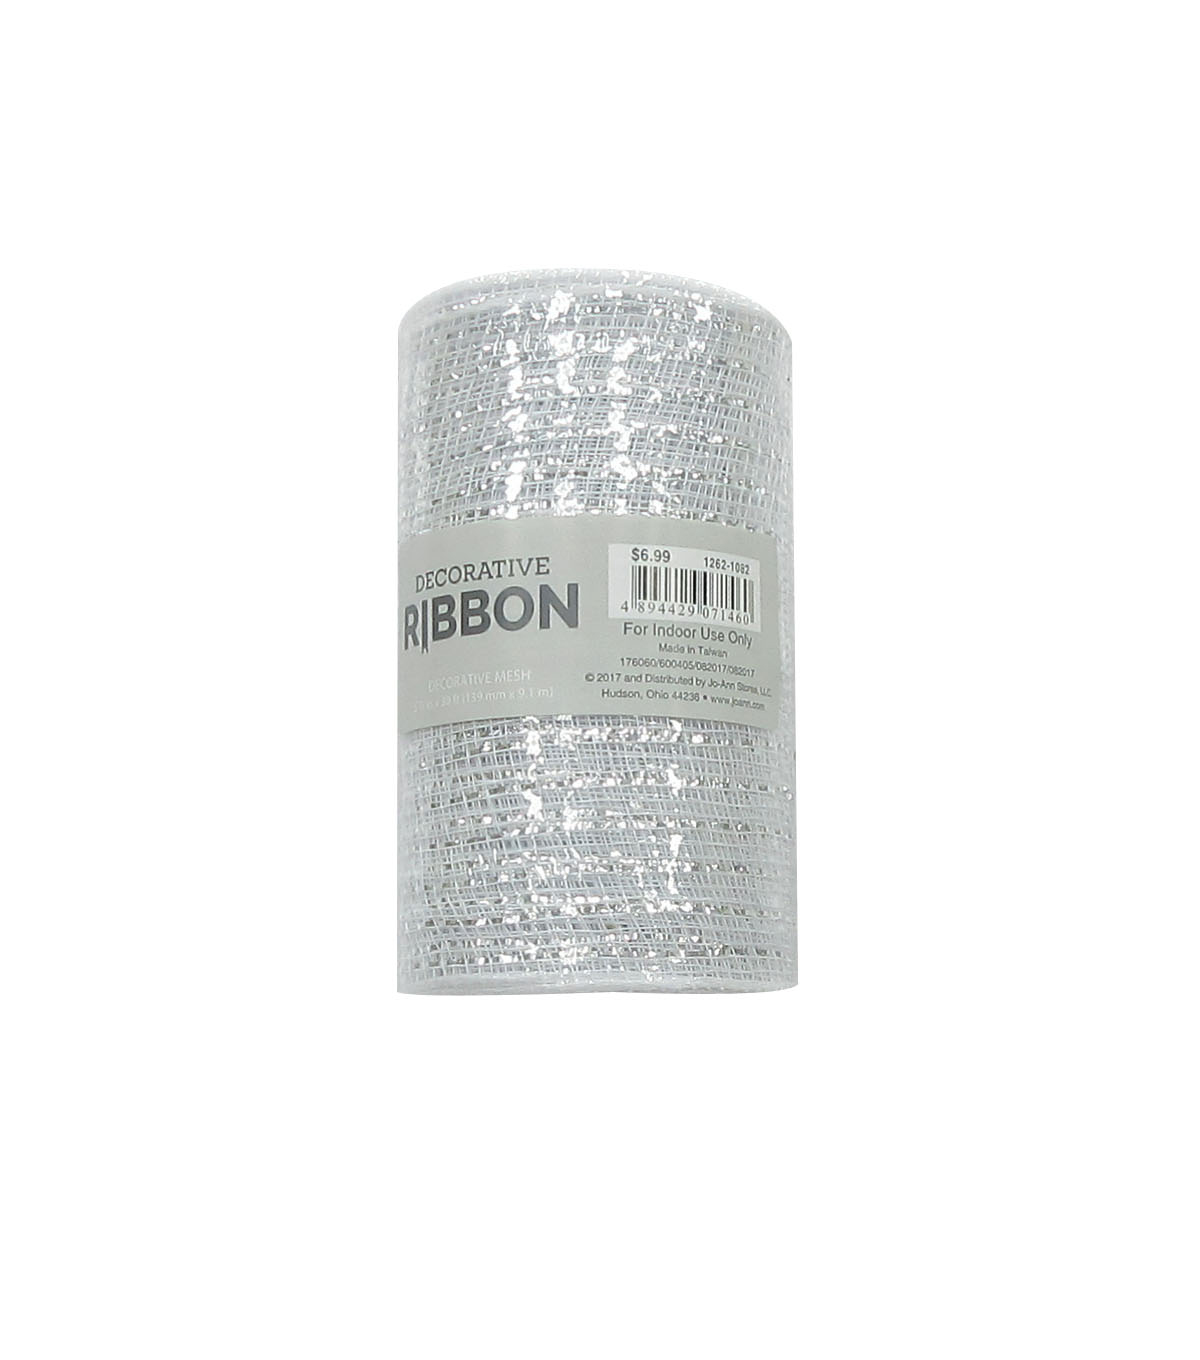 Decorative Ribbon Metallic Deco Mesh 5.5\u0027\u0027x10 yds-White & Silver